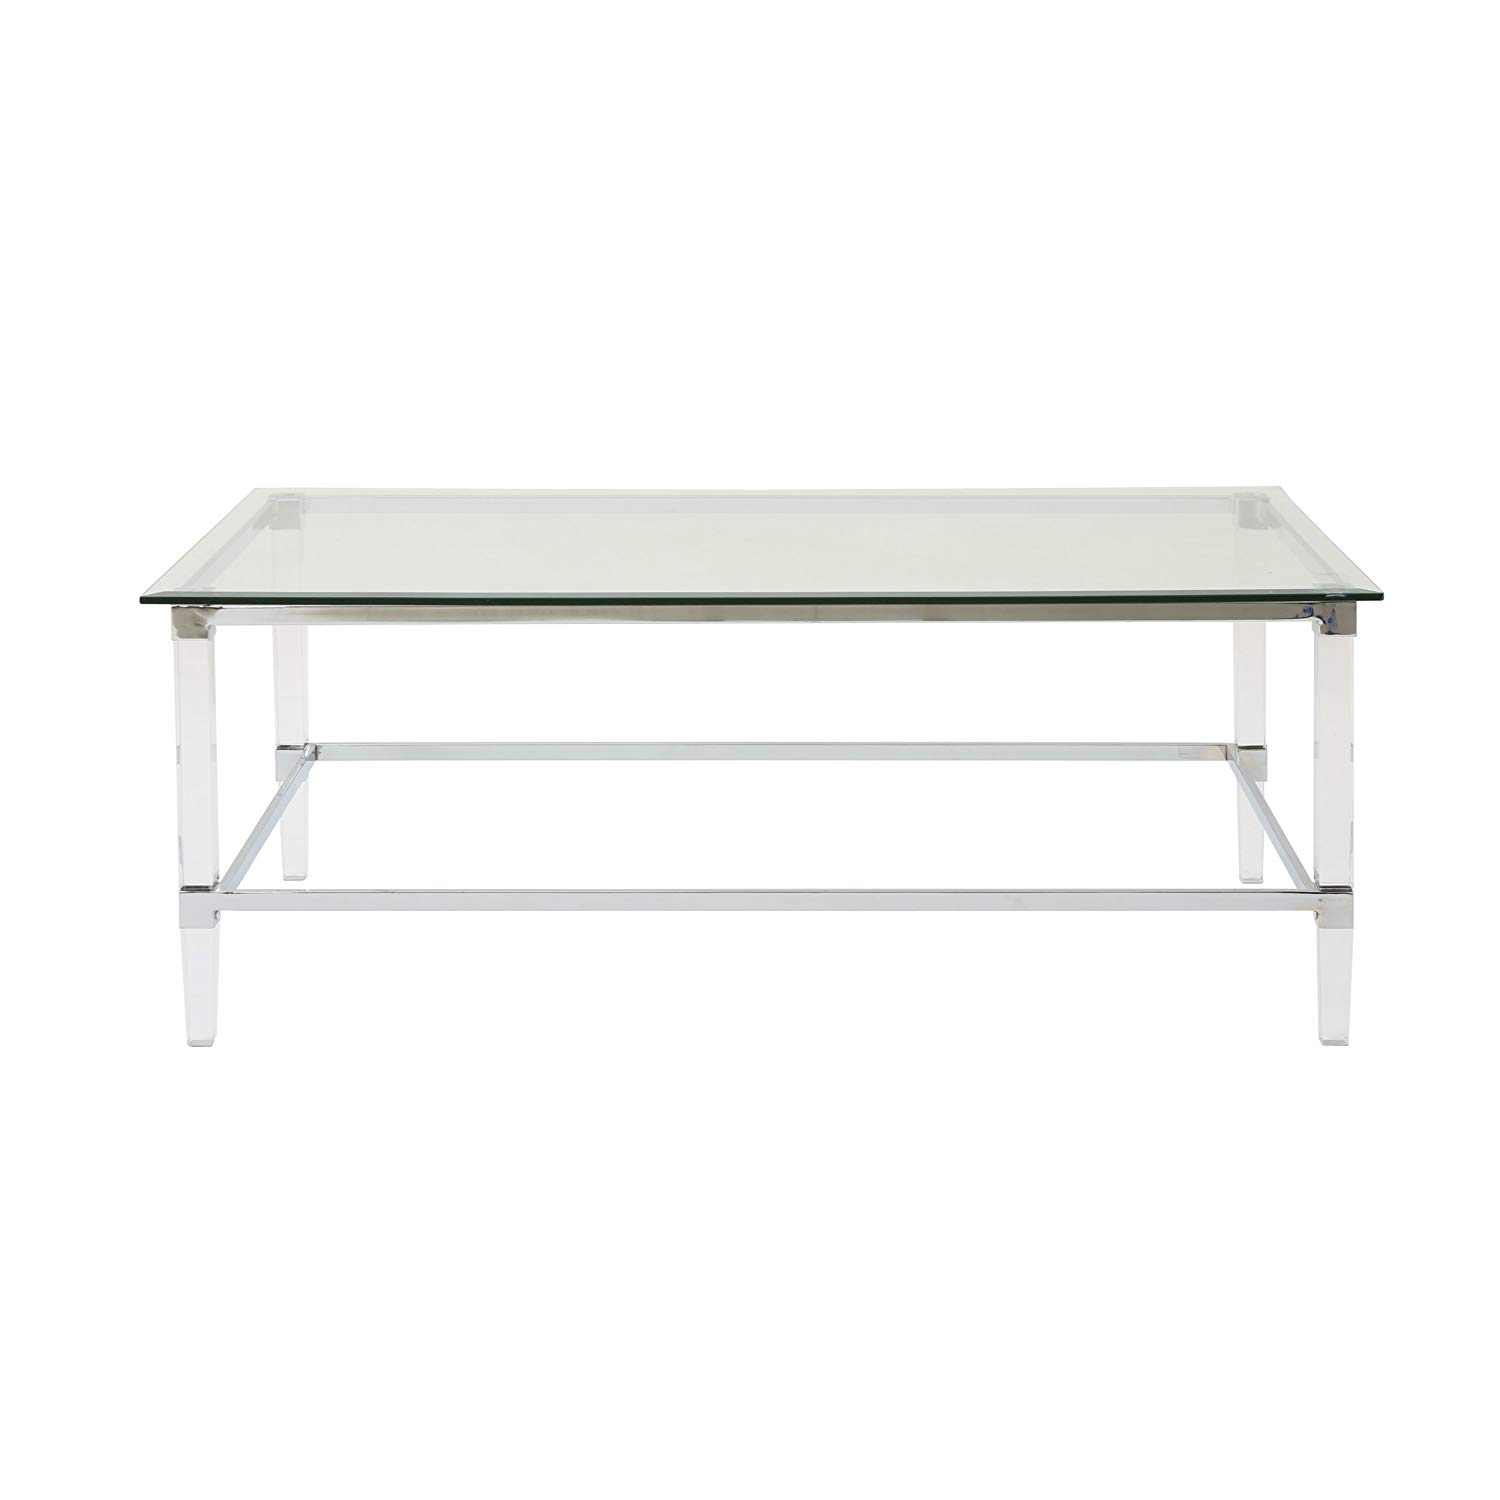 bayor modern tempered glass coffee table with acrylic lorelei accent and iron accents kitchen dining outdoor storage bench seat black nest tables ikea west elm parsons mosaic end